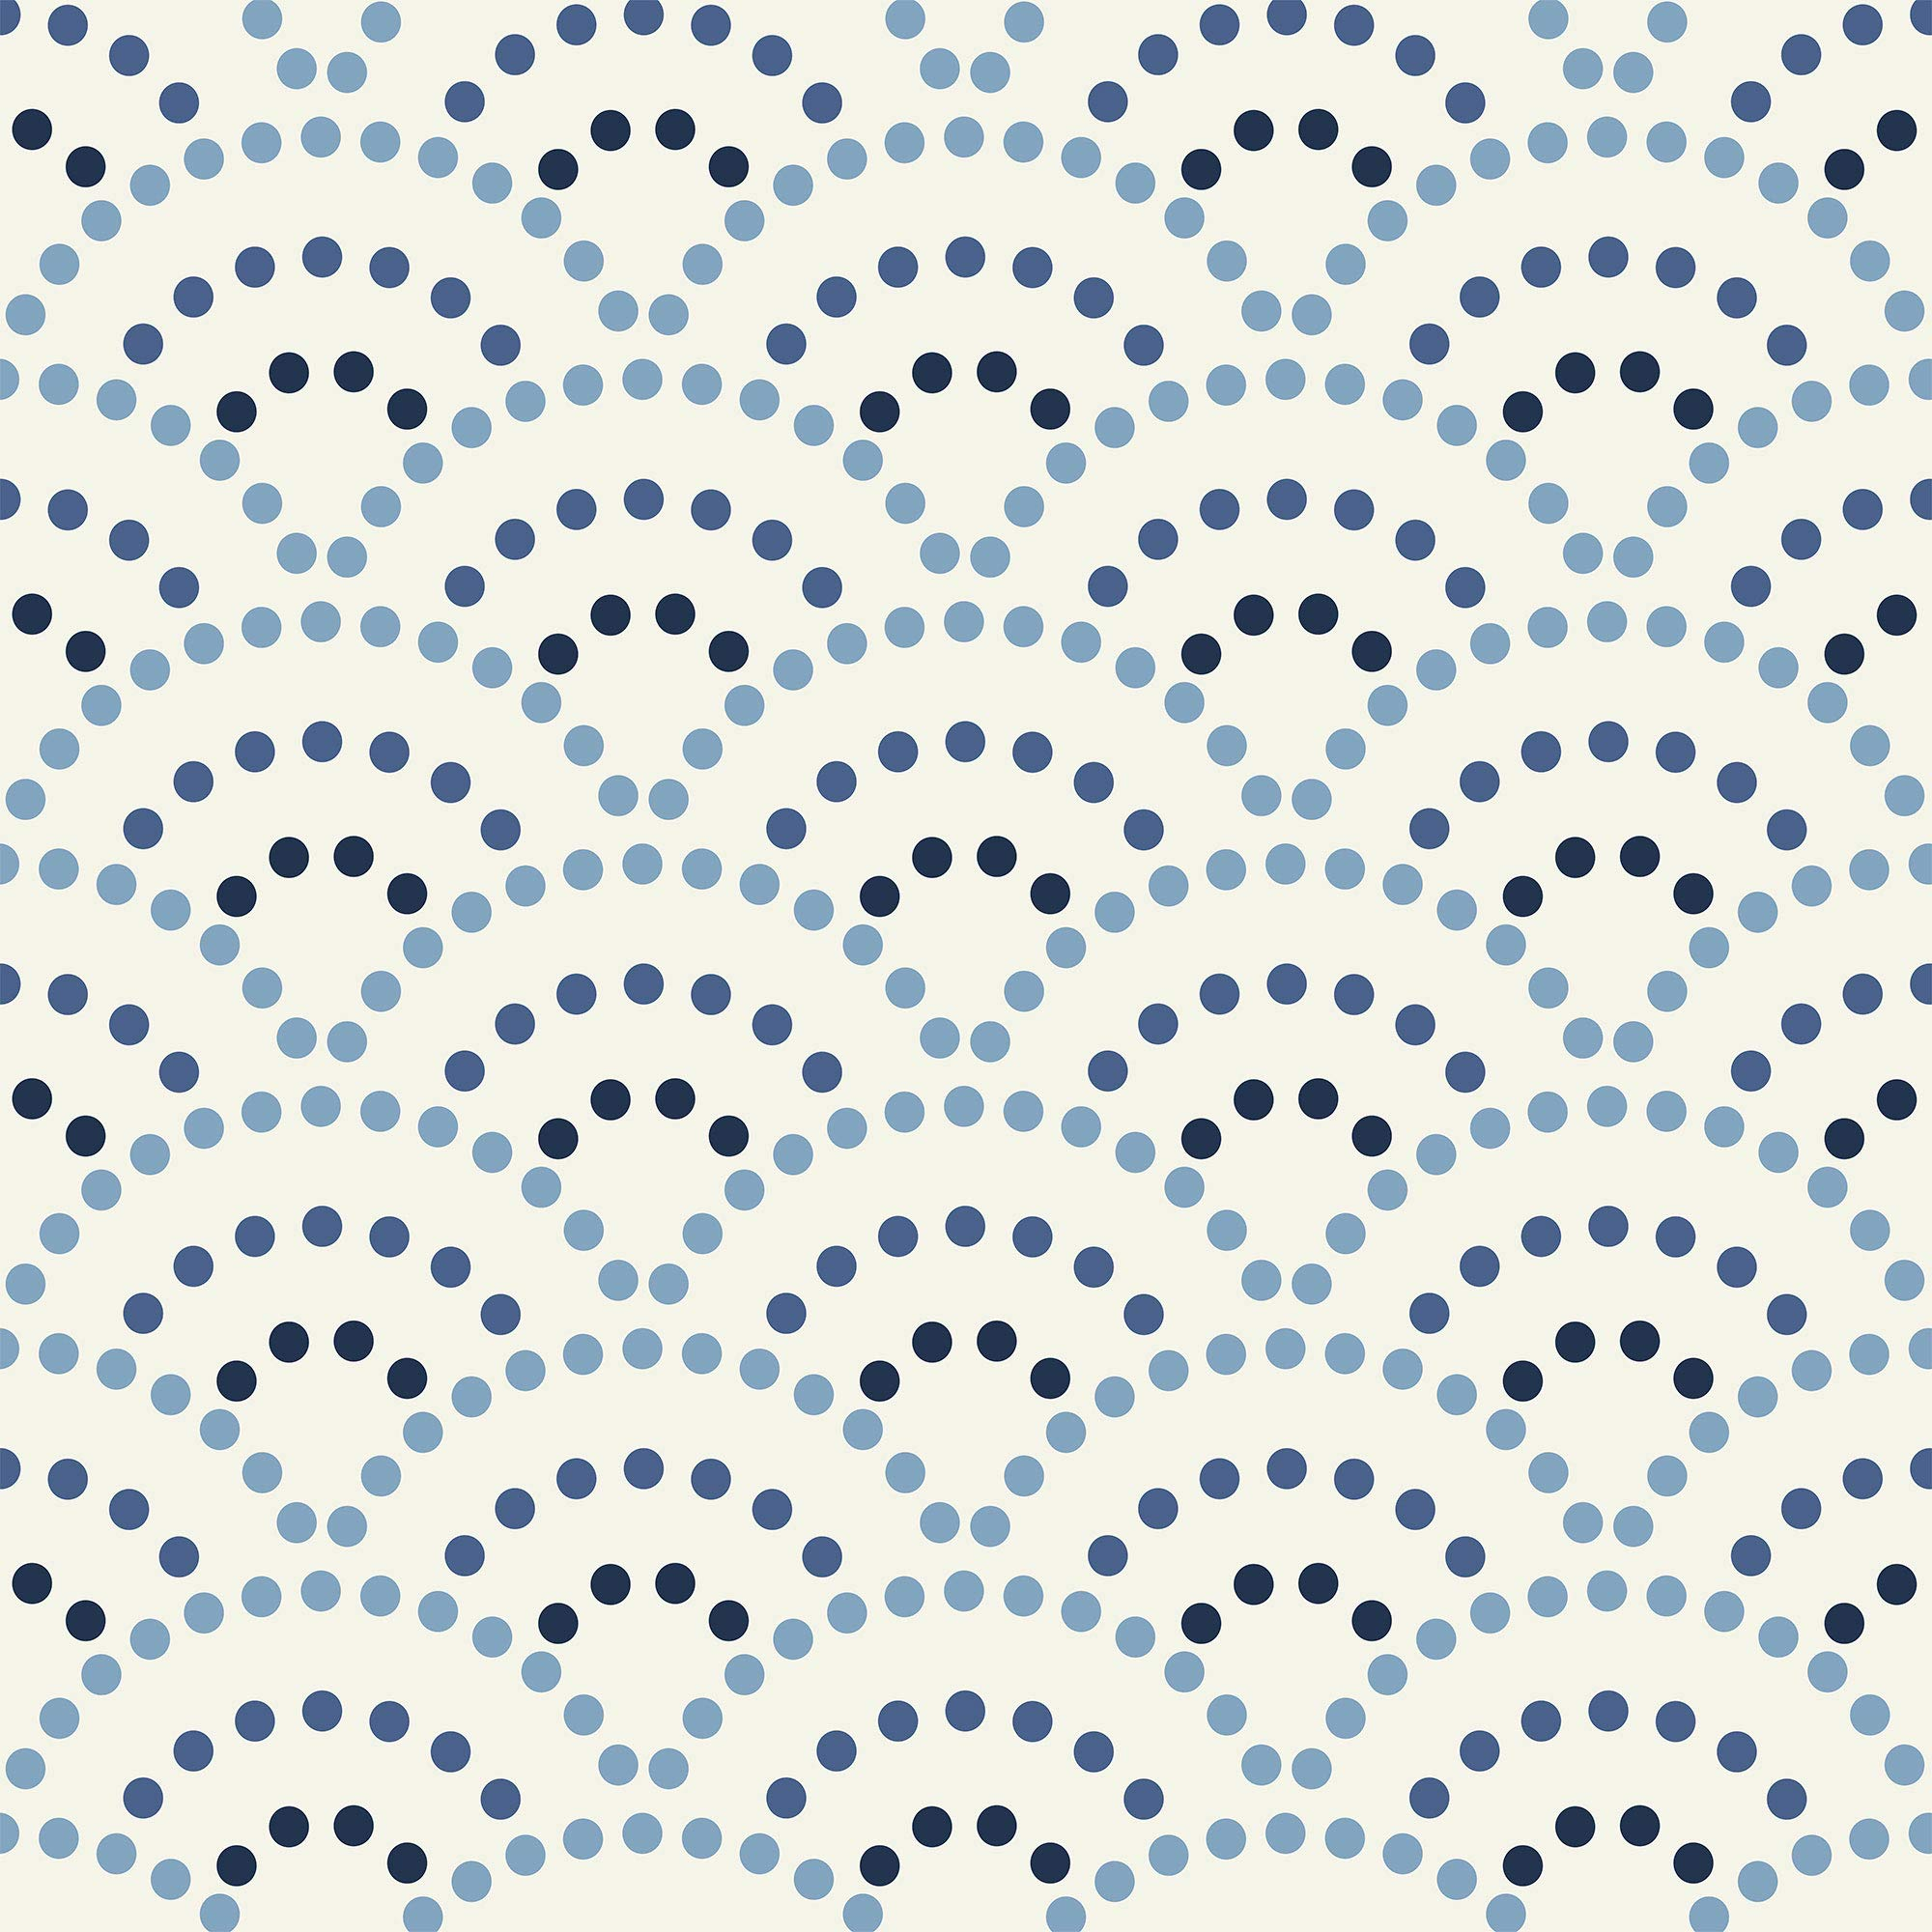 WallsByMe Peel and Stick Navy Circles Geometric Removable Wallpaper 291c - 2ft x 4ft (61x122cm) - WallFab - 7mil